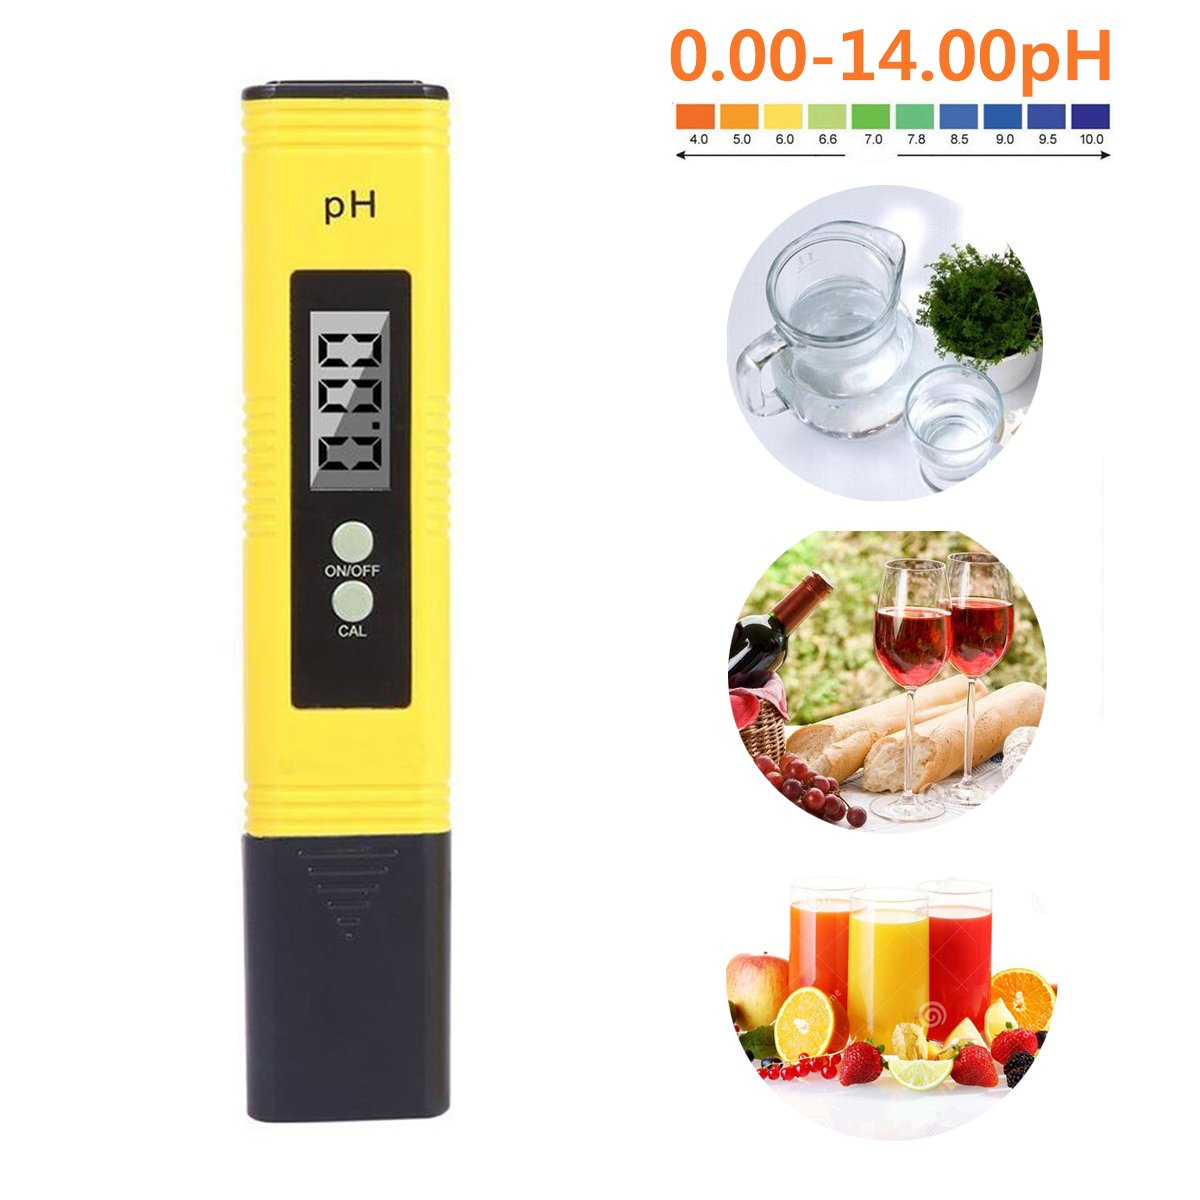 Portable Digital pH Meter Tester, LIUMY Pocket size Aquarium Pool Water Wine Urine LCD Pen Monitor 2 x 1.5V LR44 Battery ( Not included )